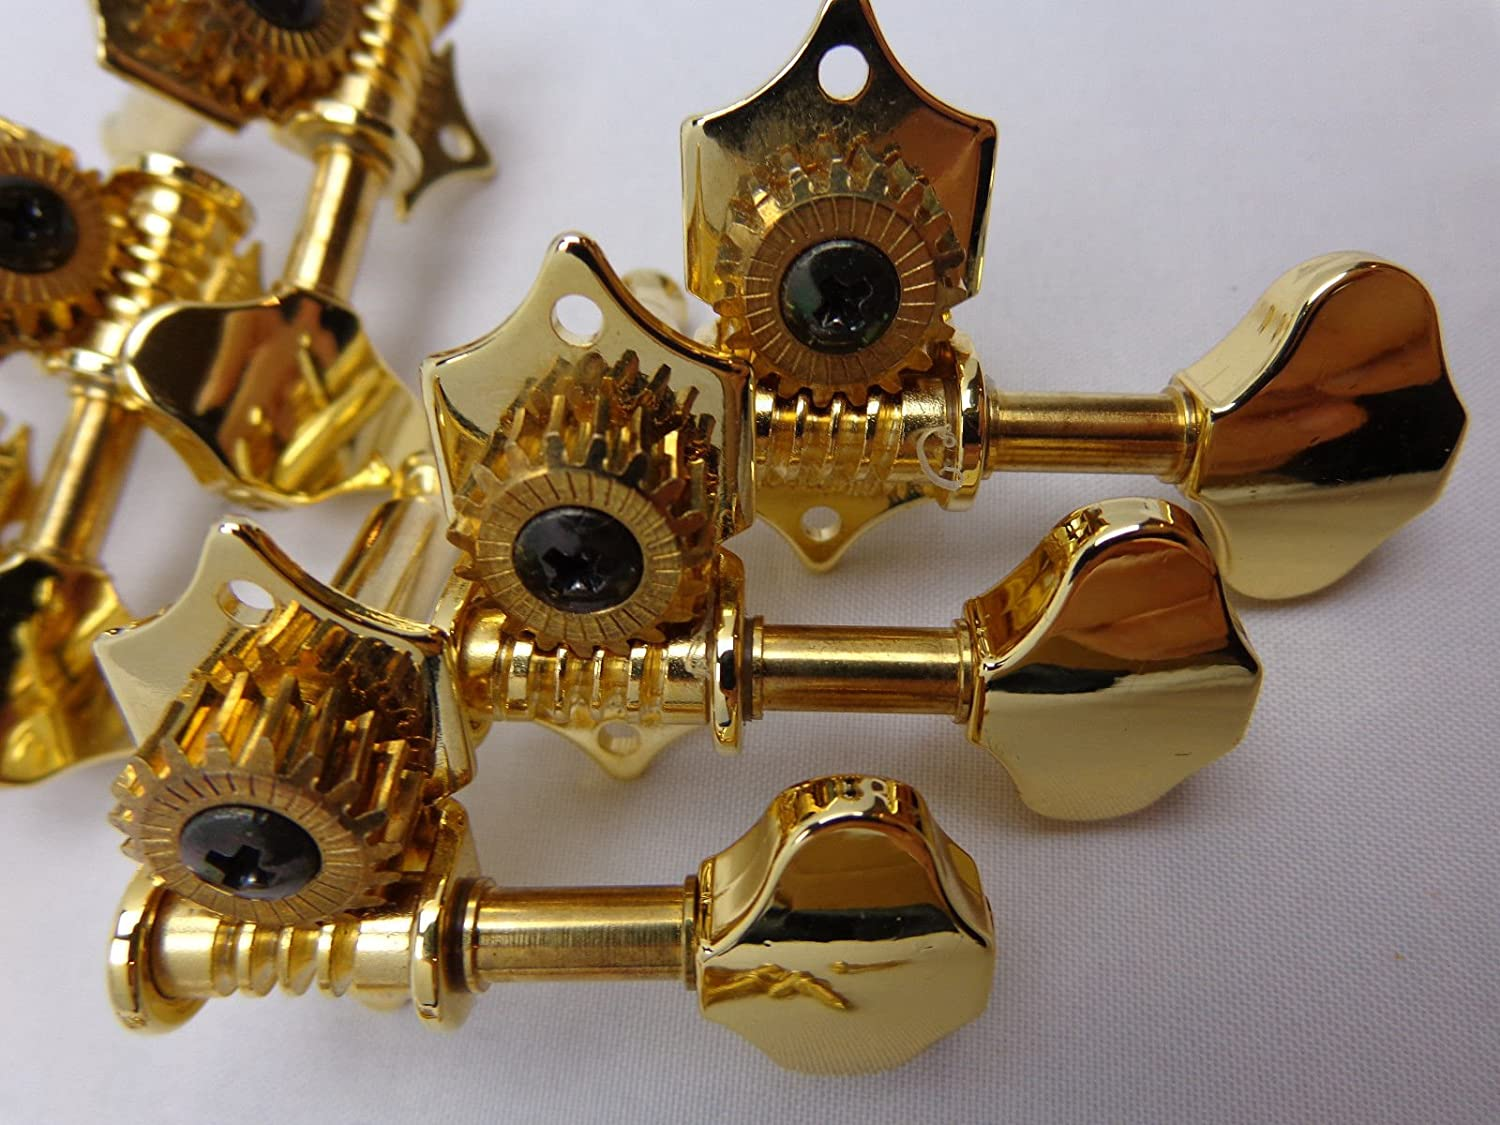 3 Tuning Pegs Tuners Machine Heads Acoustic Butterbean Aliexpresscom Buy Free Shipping Wilkinson Chrome Covered Vintage Guitar Musical Instruments